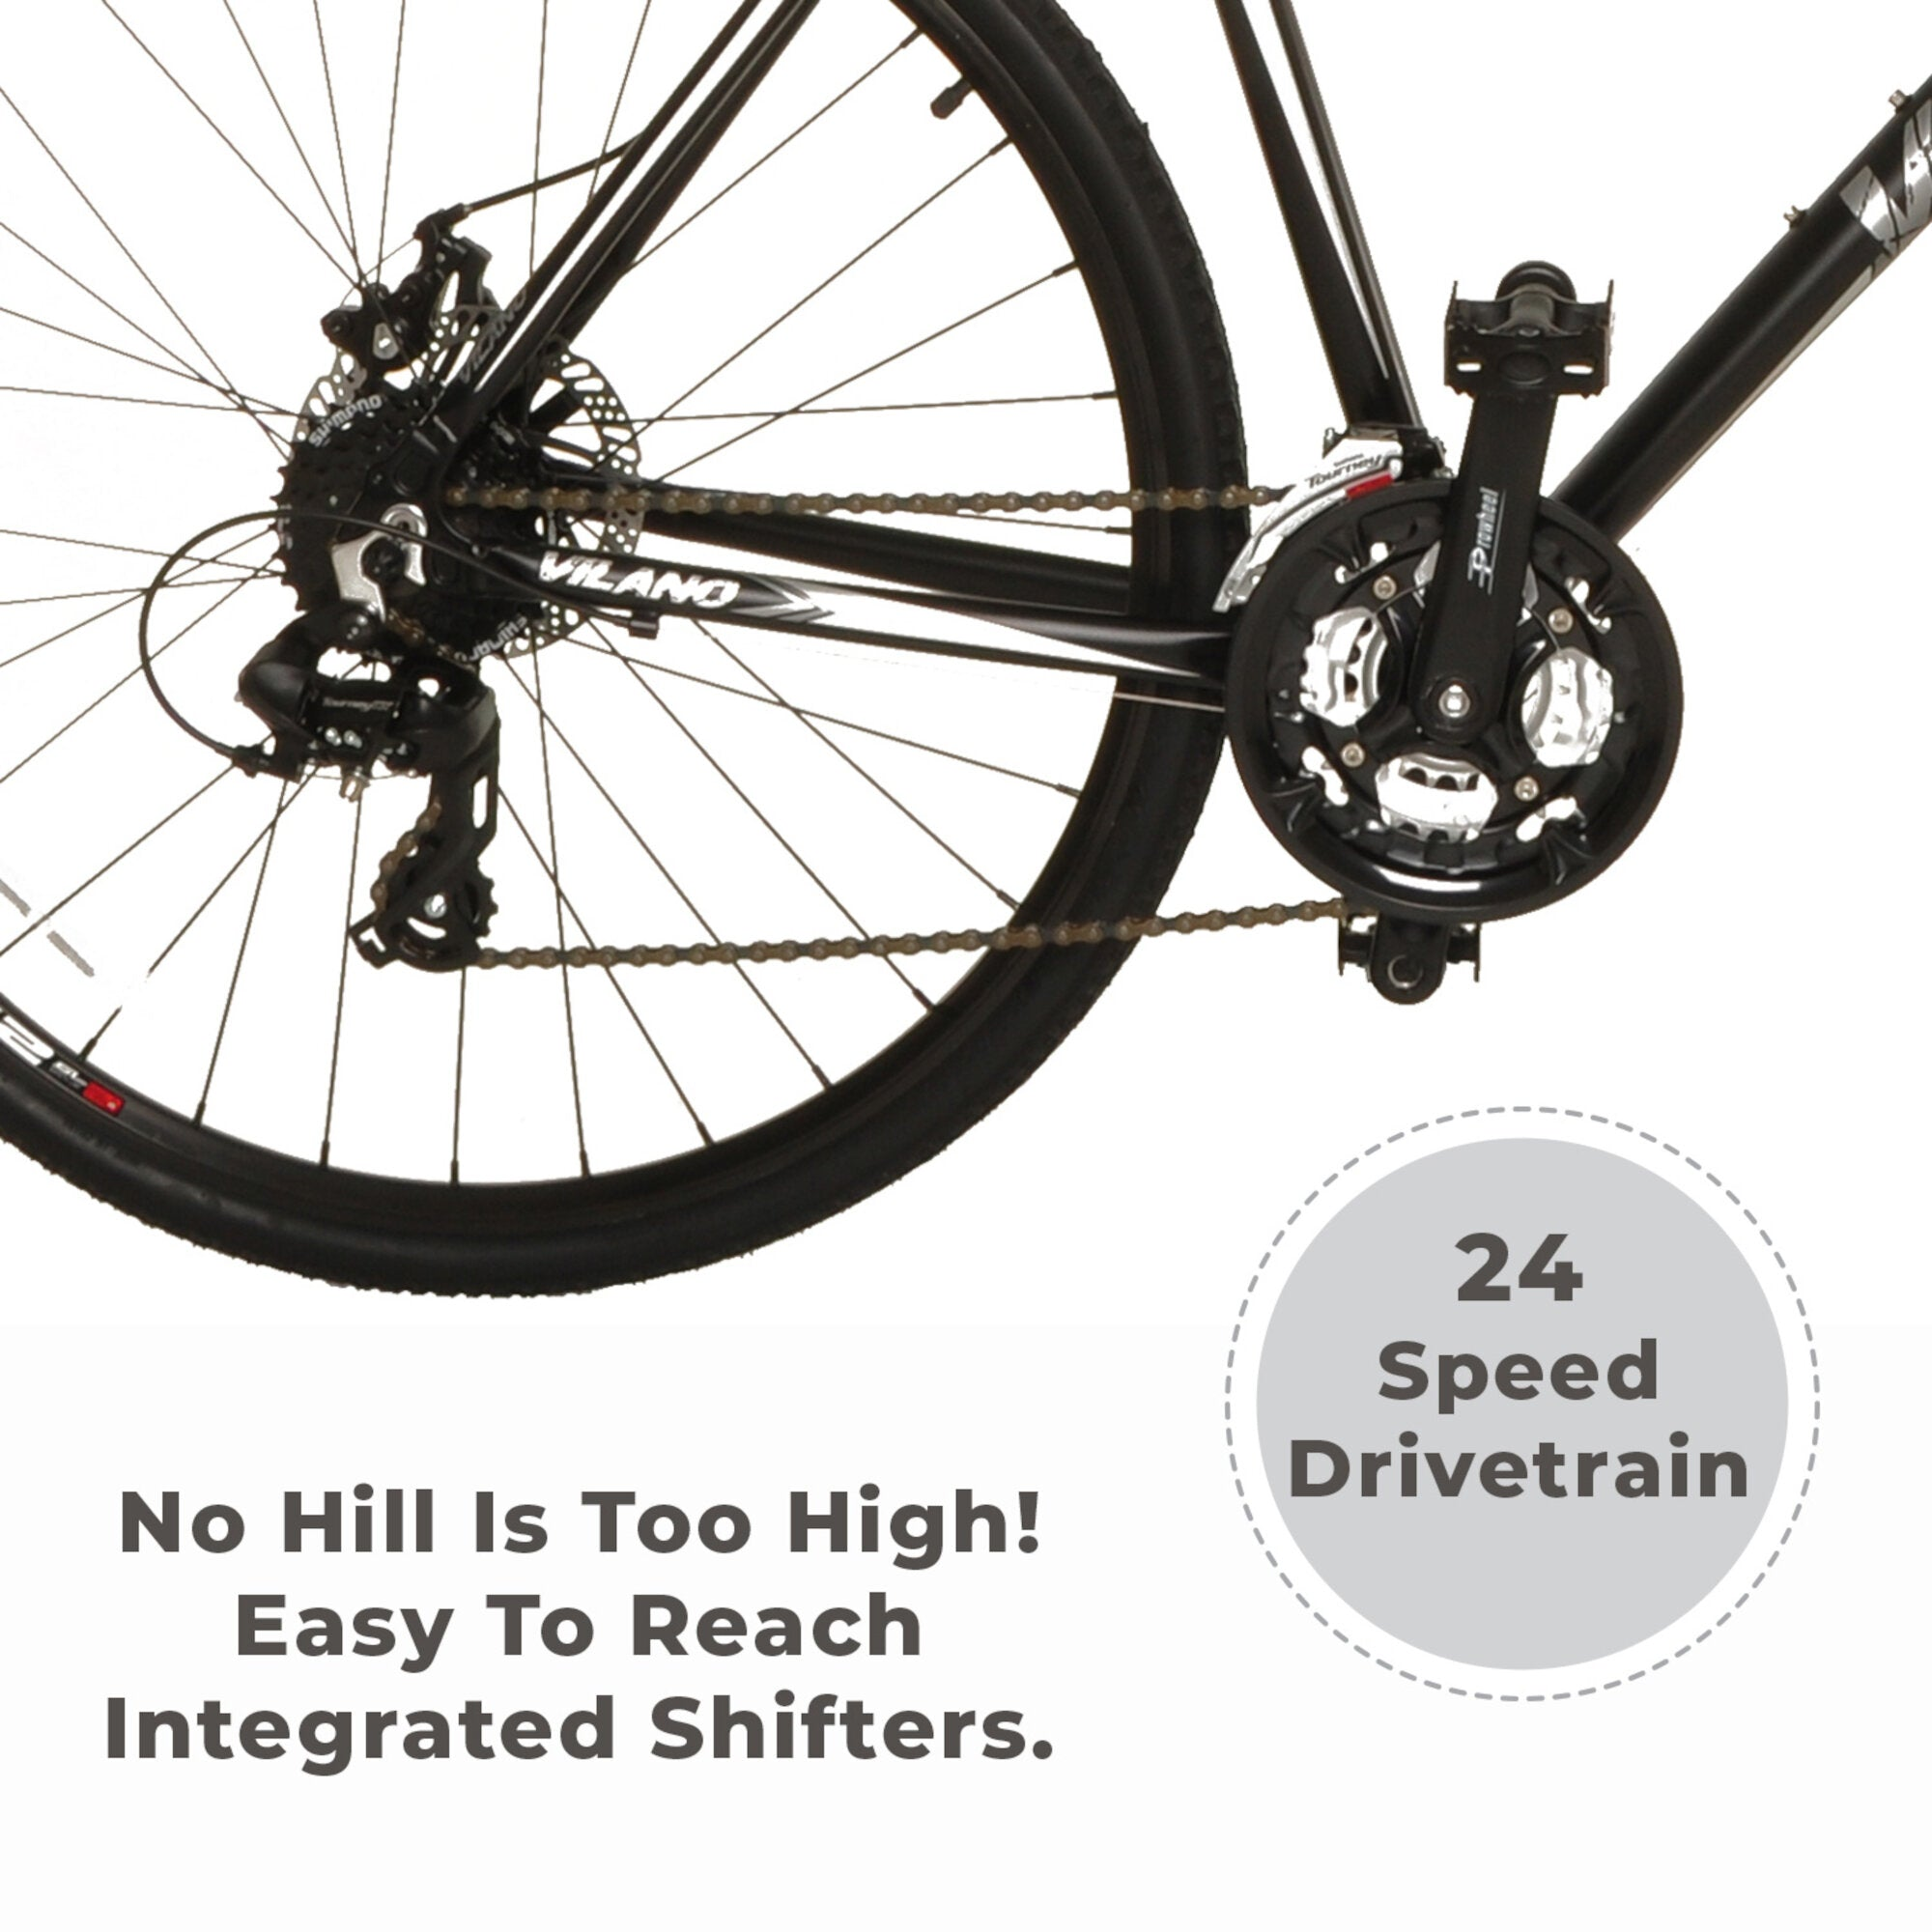 products/553-PH3__feature_drivetrain.jpg